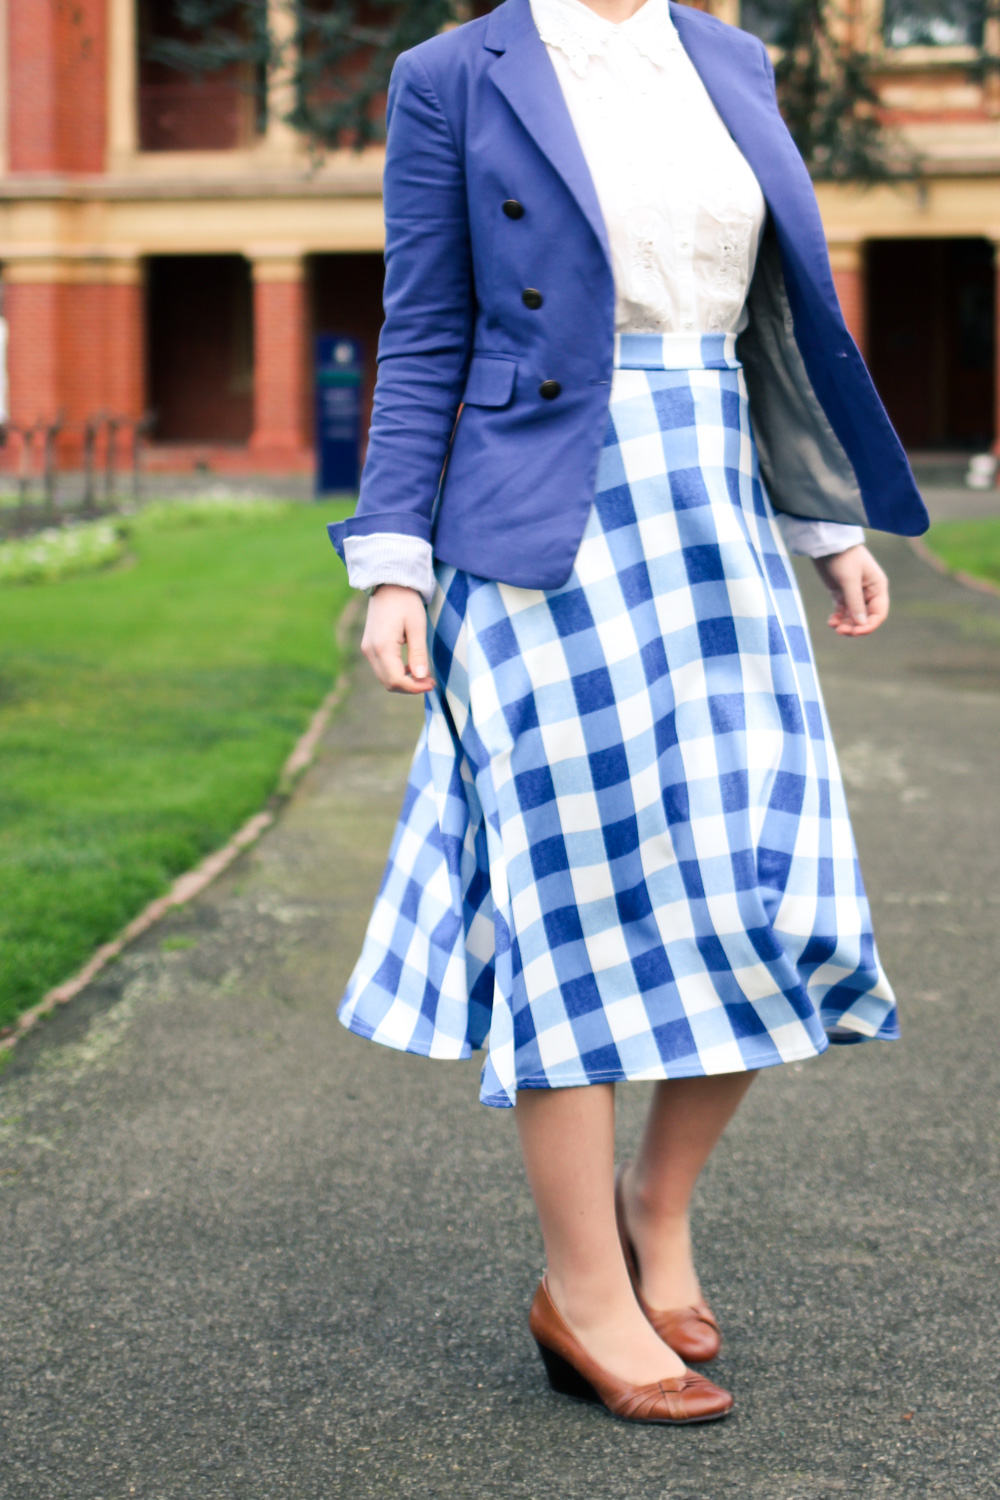 @findingfemme for the boohoo.com #WeAreUs unique style campaign in BooHoo blue gingham skirt, blue blazer and lace blouse.